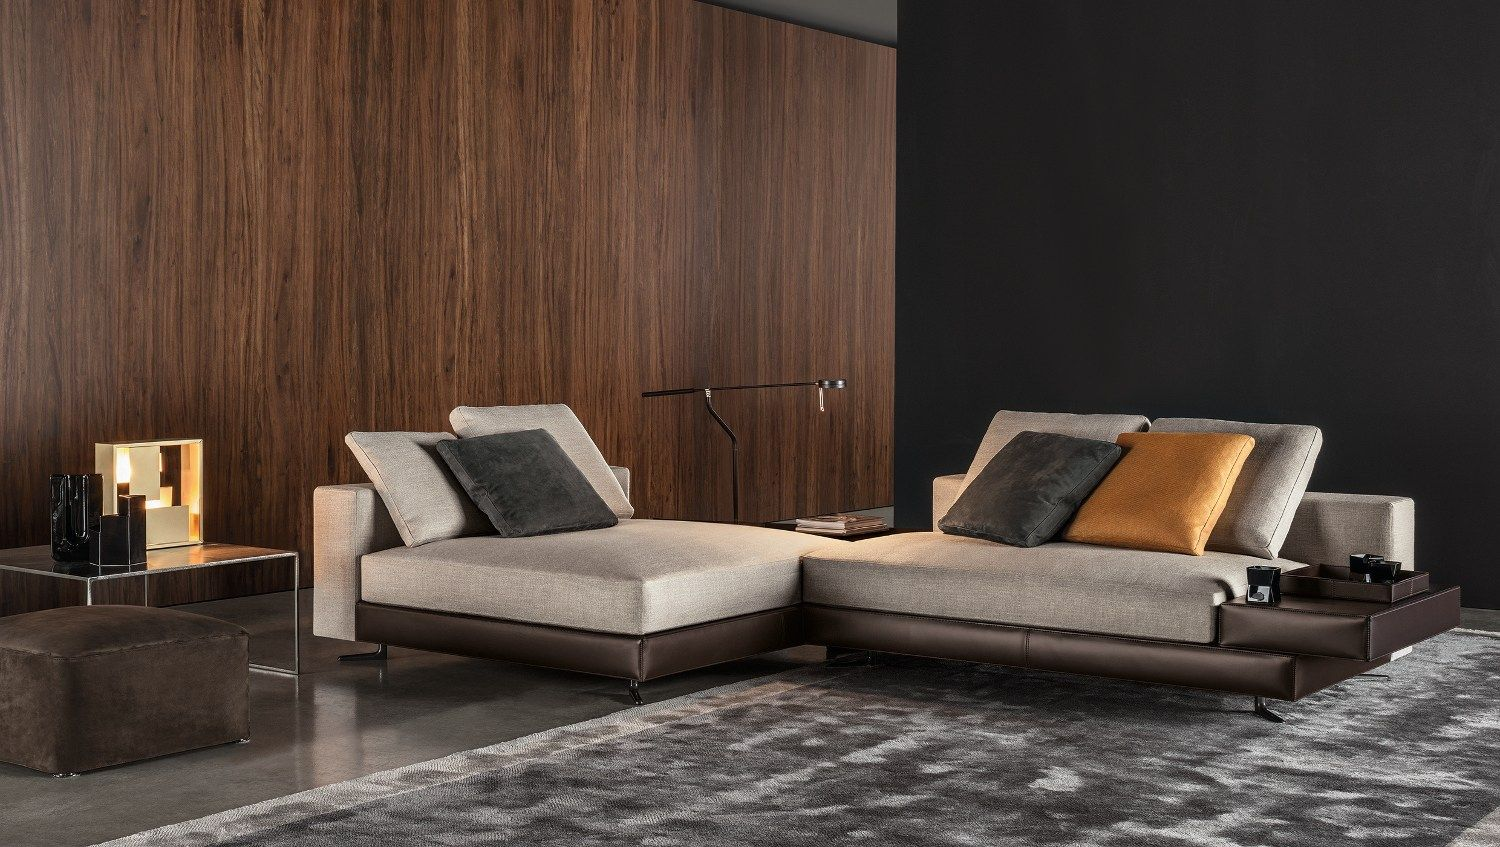 Magnificent White Seating System By Rodolfo Dordoni For Minotti Modern Caraccident5 Cool Chair Designs And Ideas Caraccident5Info